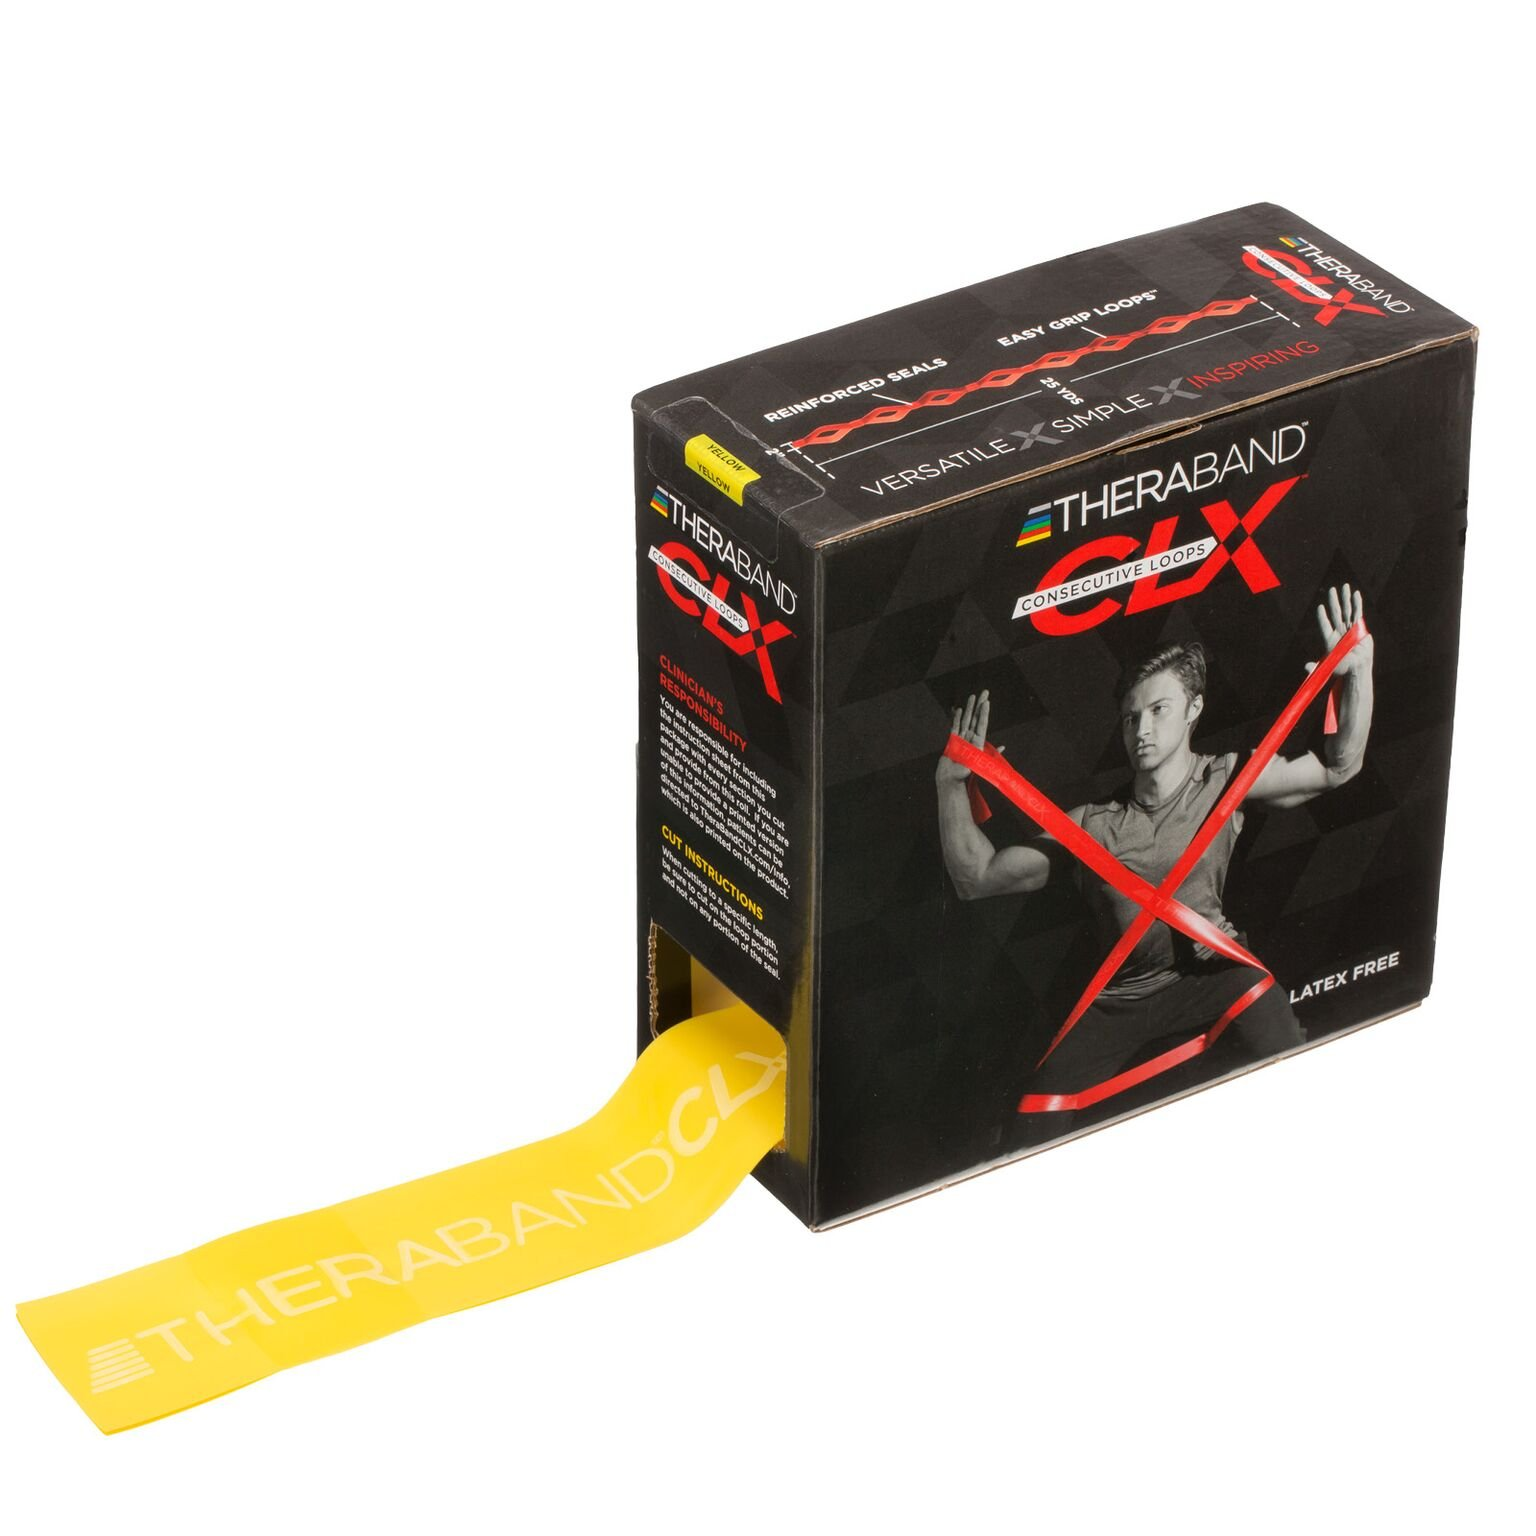 TheraBand CLX Resistance Band with Loops, Fitness Band for Home Exercise and Full Body Workouts, Portable Gym Equipment, Best Gift for Athletes, 25 Yard Dispenser Box, Yellow, Thin, Beginner Level 2